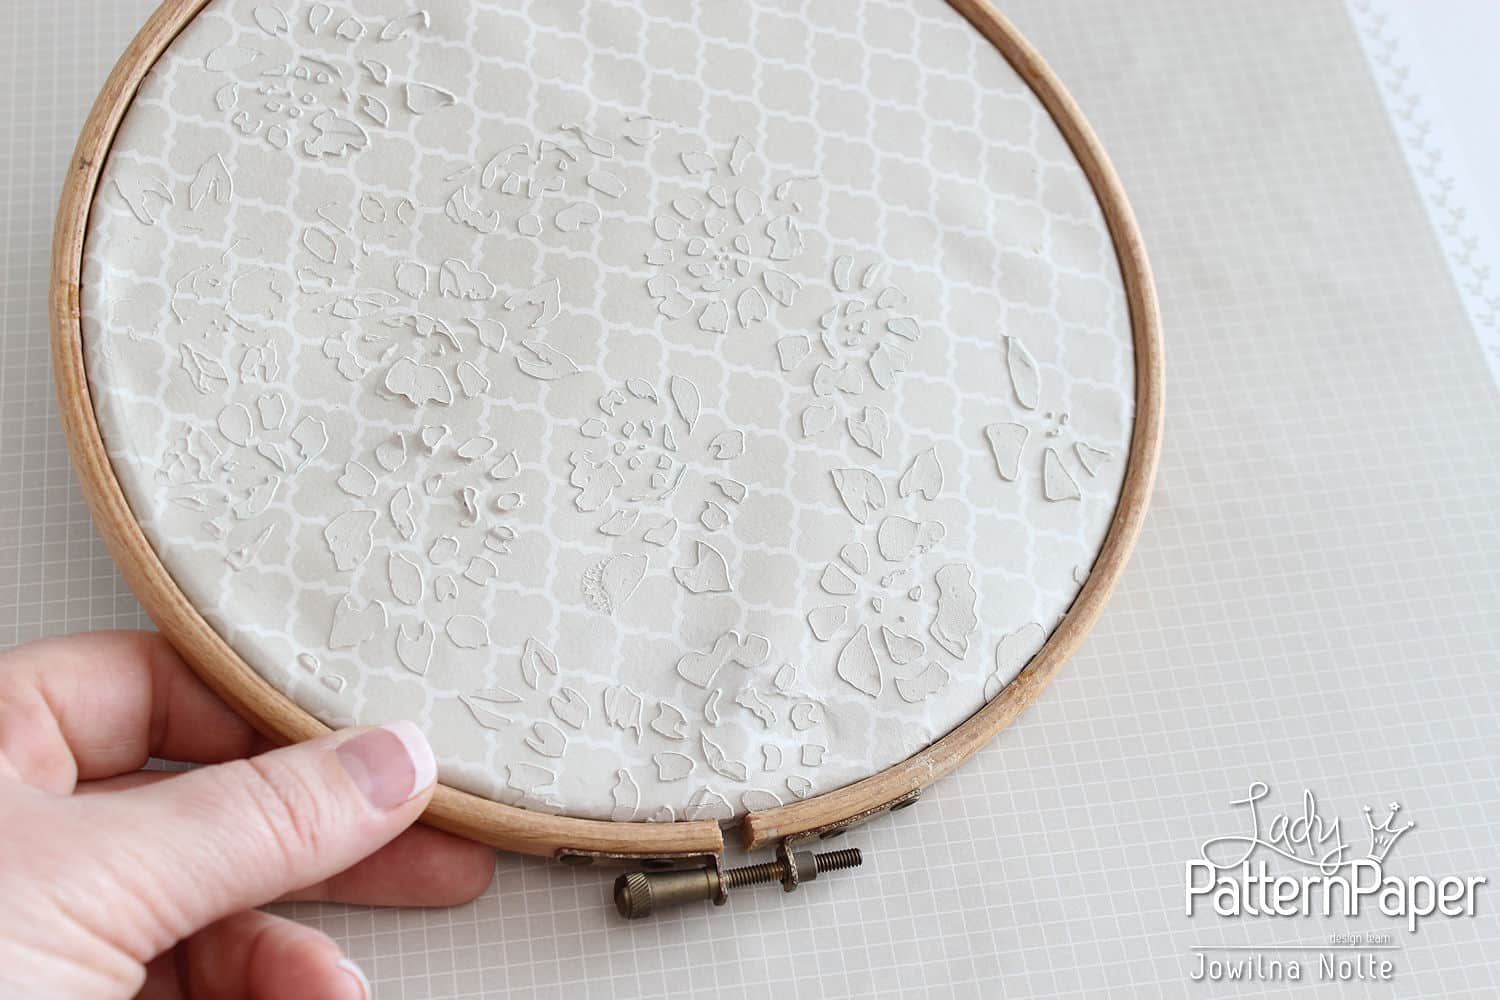 Making A Framed Paper Hoop - Step 7